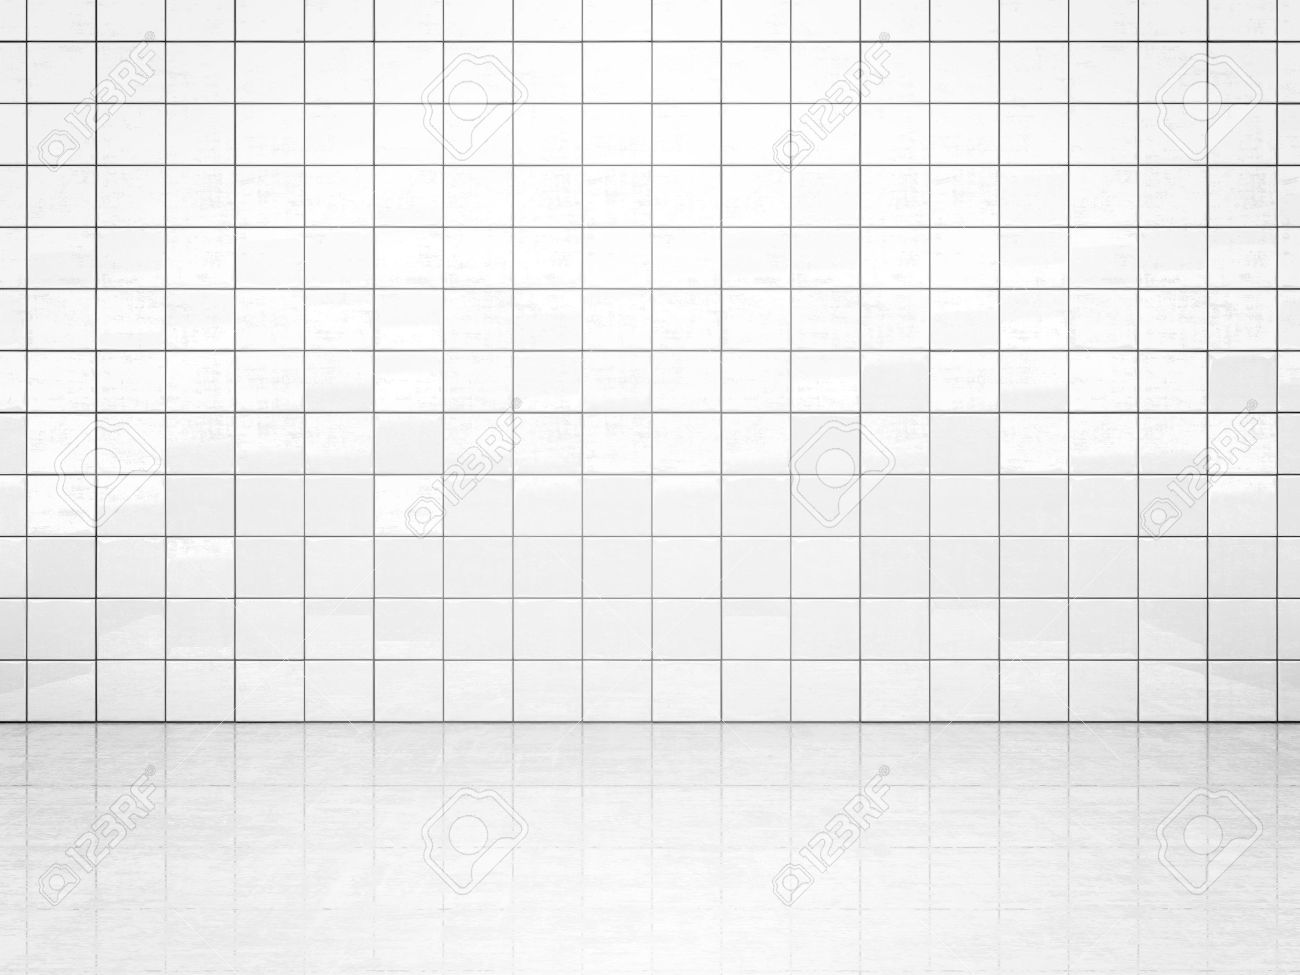 White Ceramic Tile Wall And Concrete Floor. Bath Or Toilet Room ...